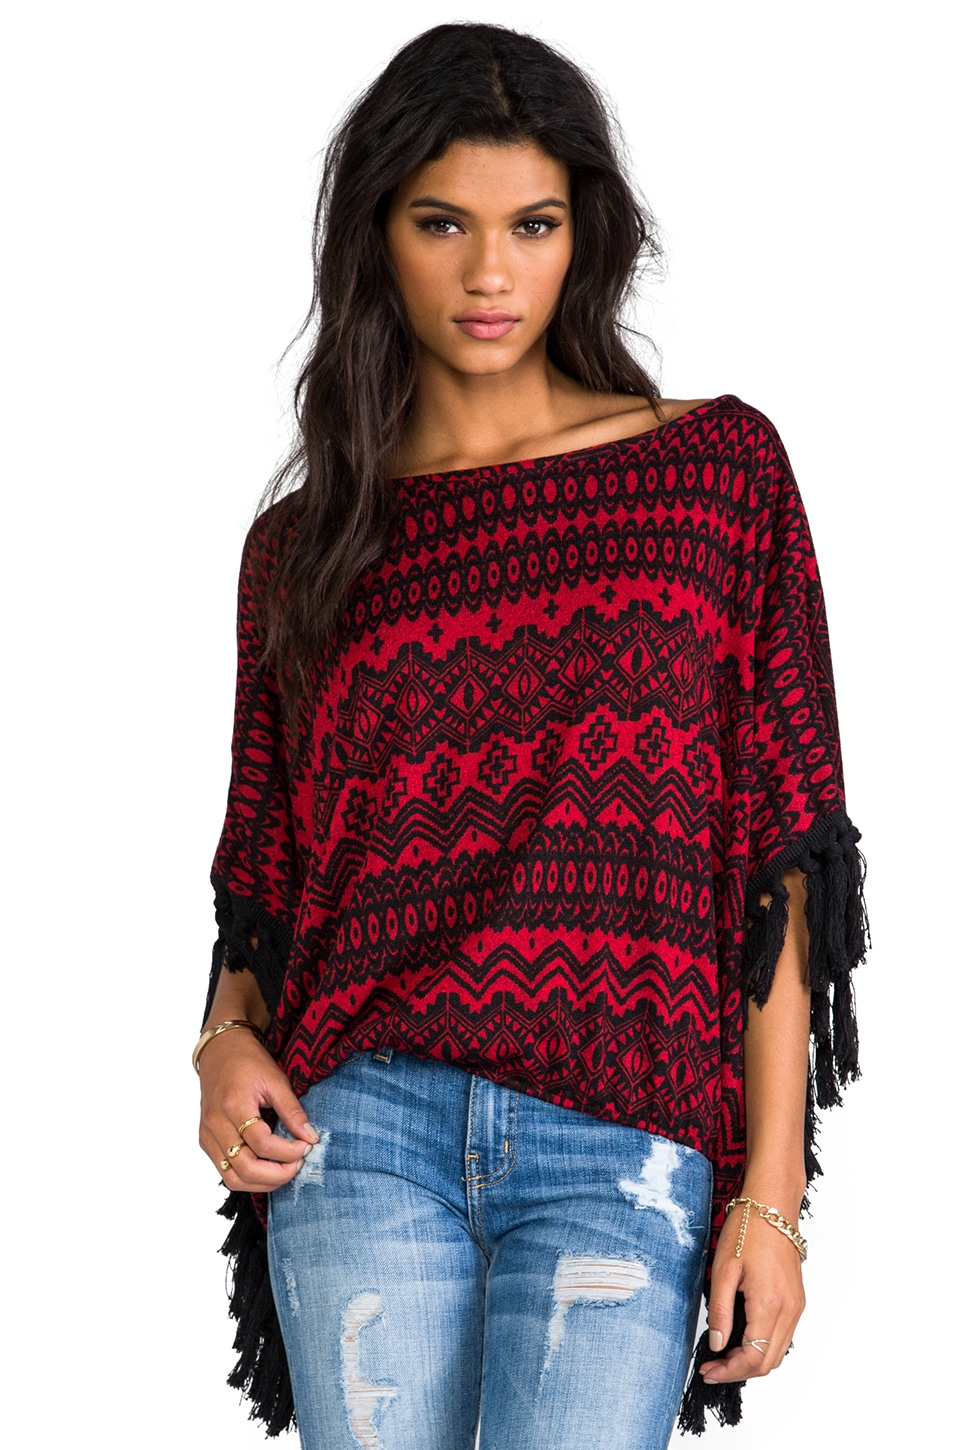 VAVA by Joy Han Adele Blouse in Red